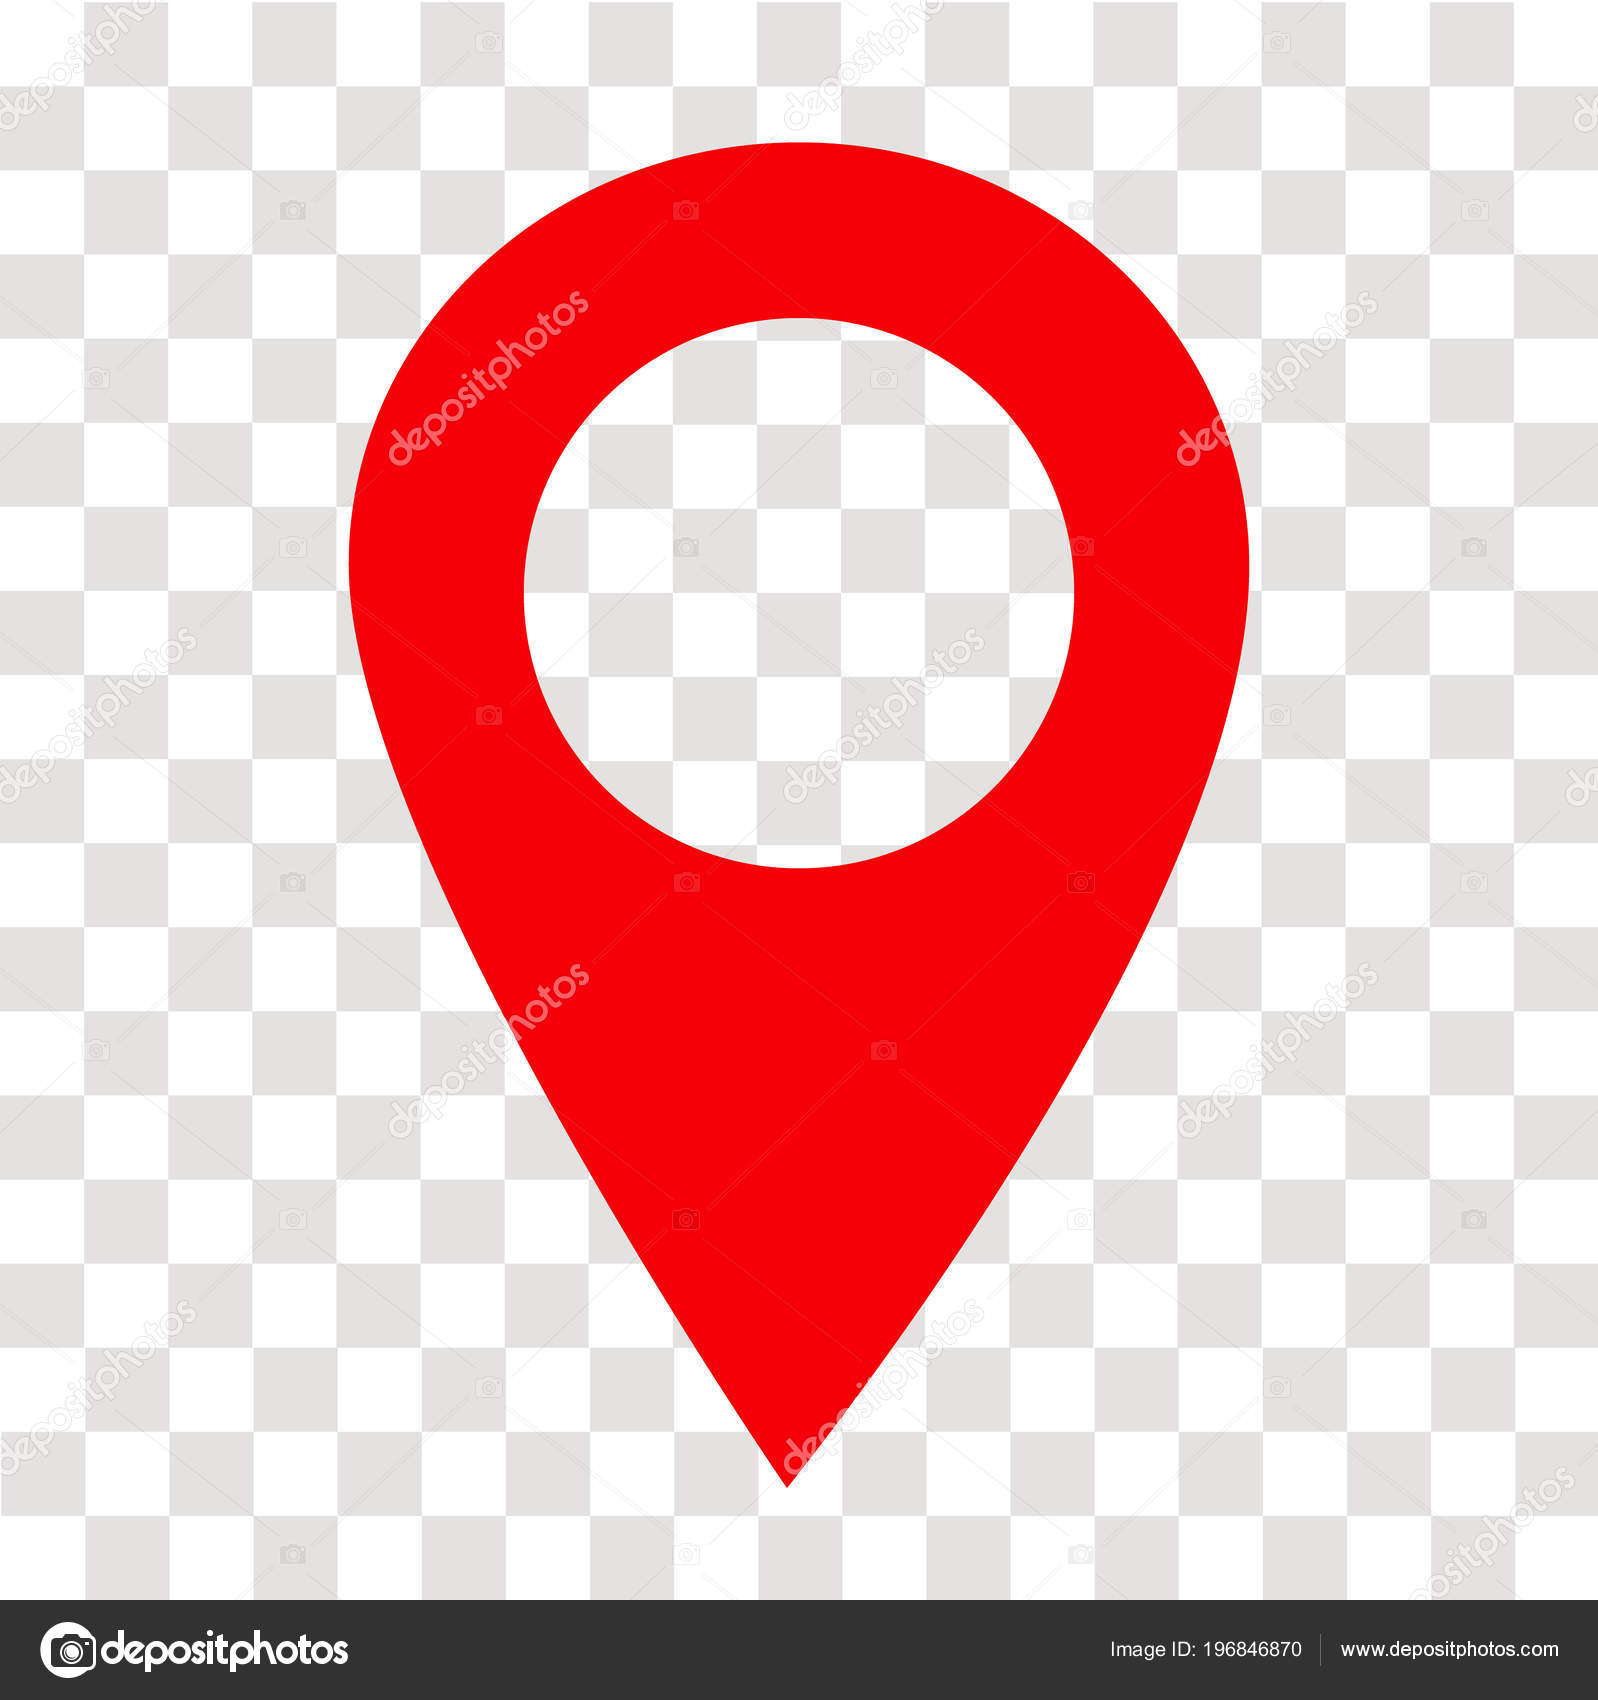 location pin icon transparent location pin sign flat style red